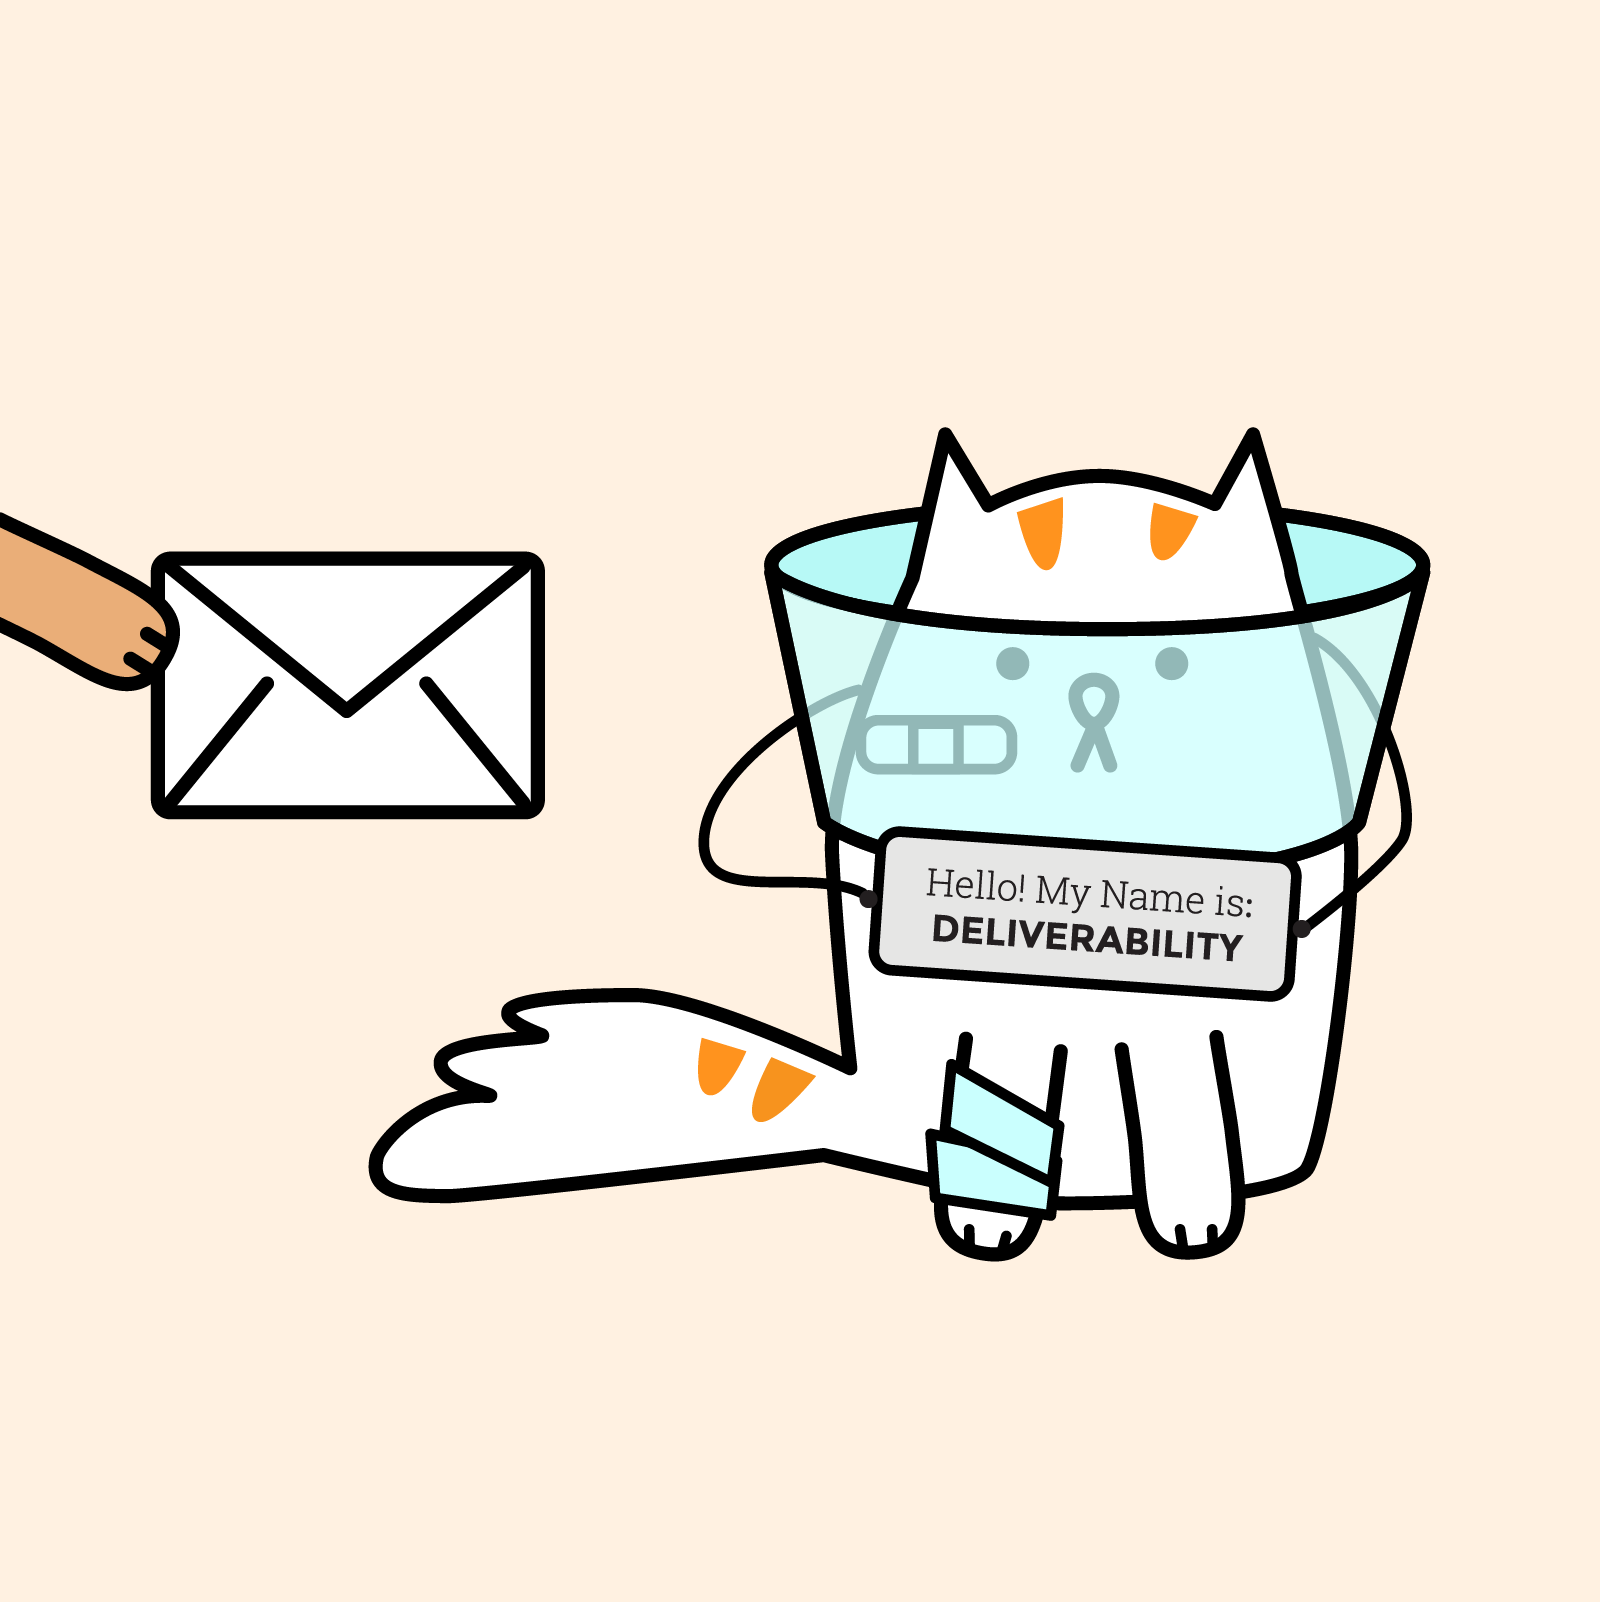 Deliverability kitty